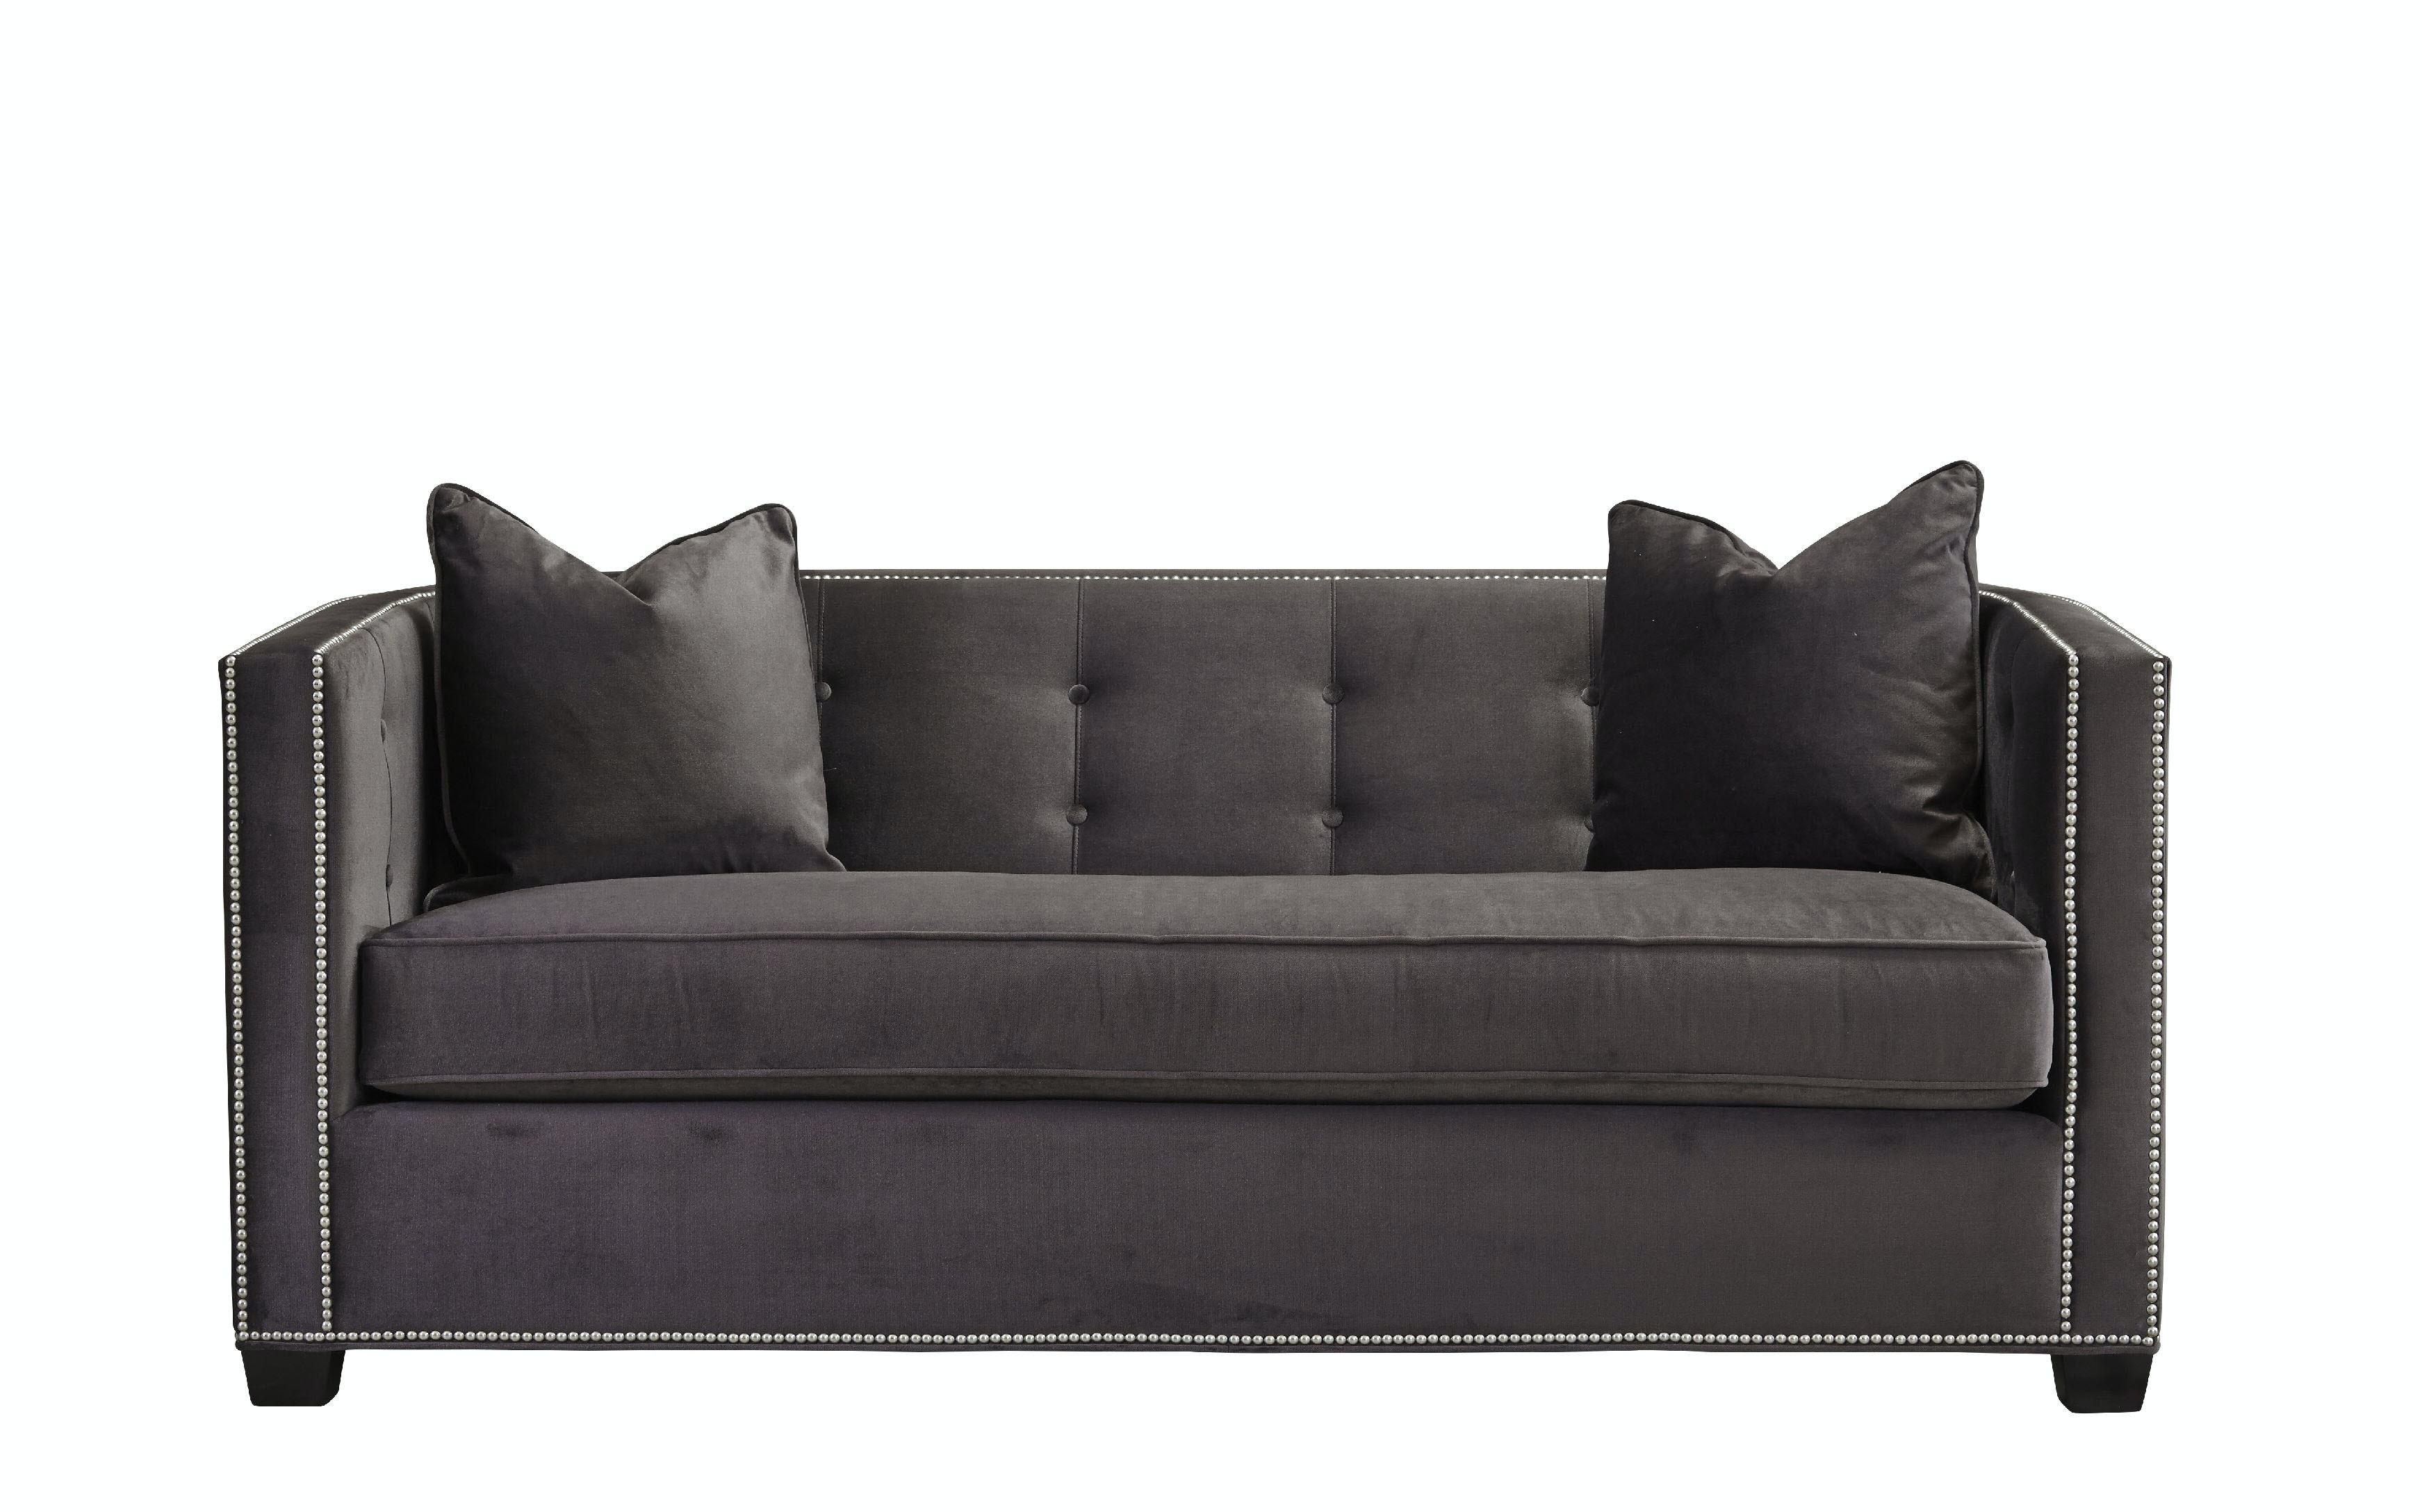 Gentil Stacy Select Vega Settee 21446